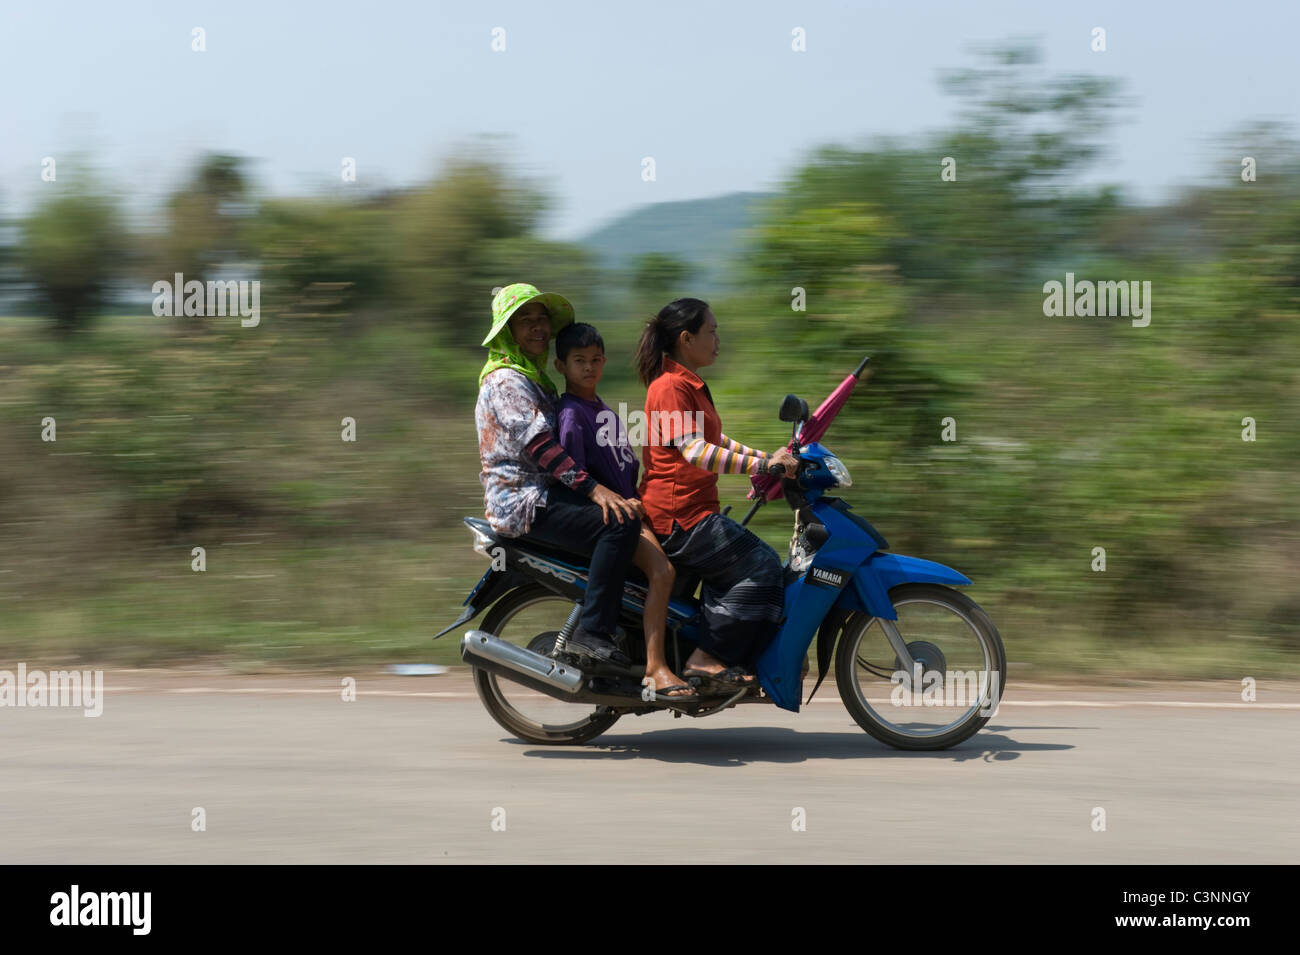 Three people on a motor cycle in North East Thailand. Stock Photo